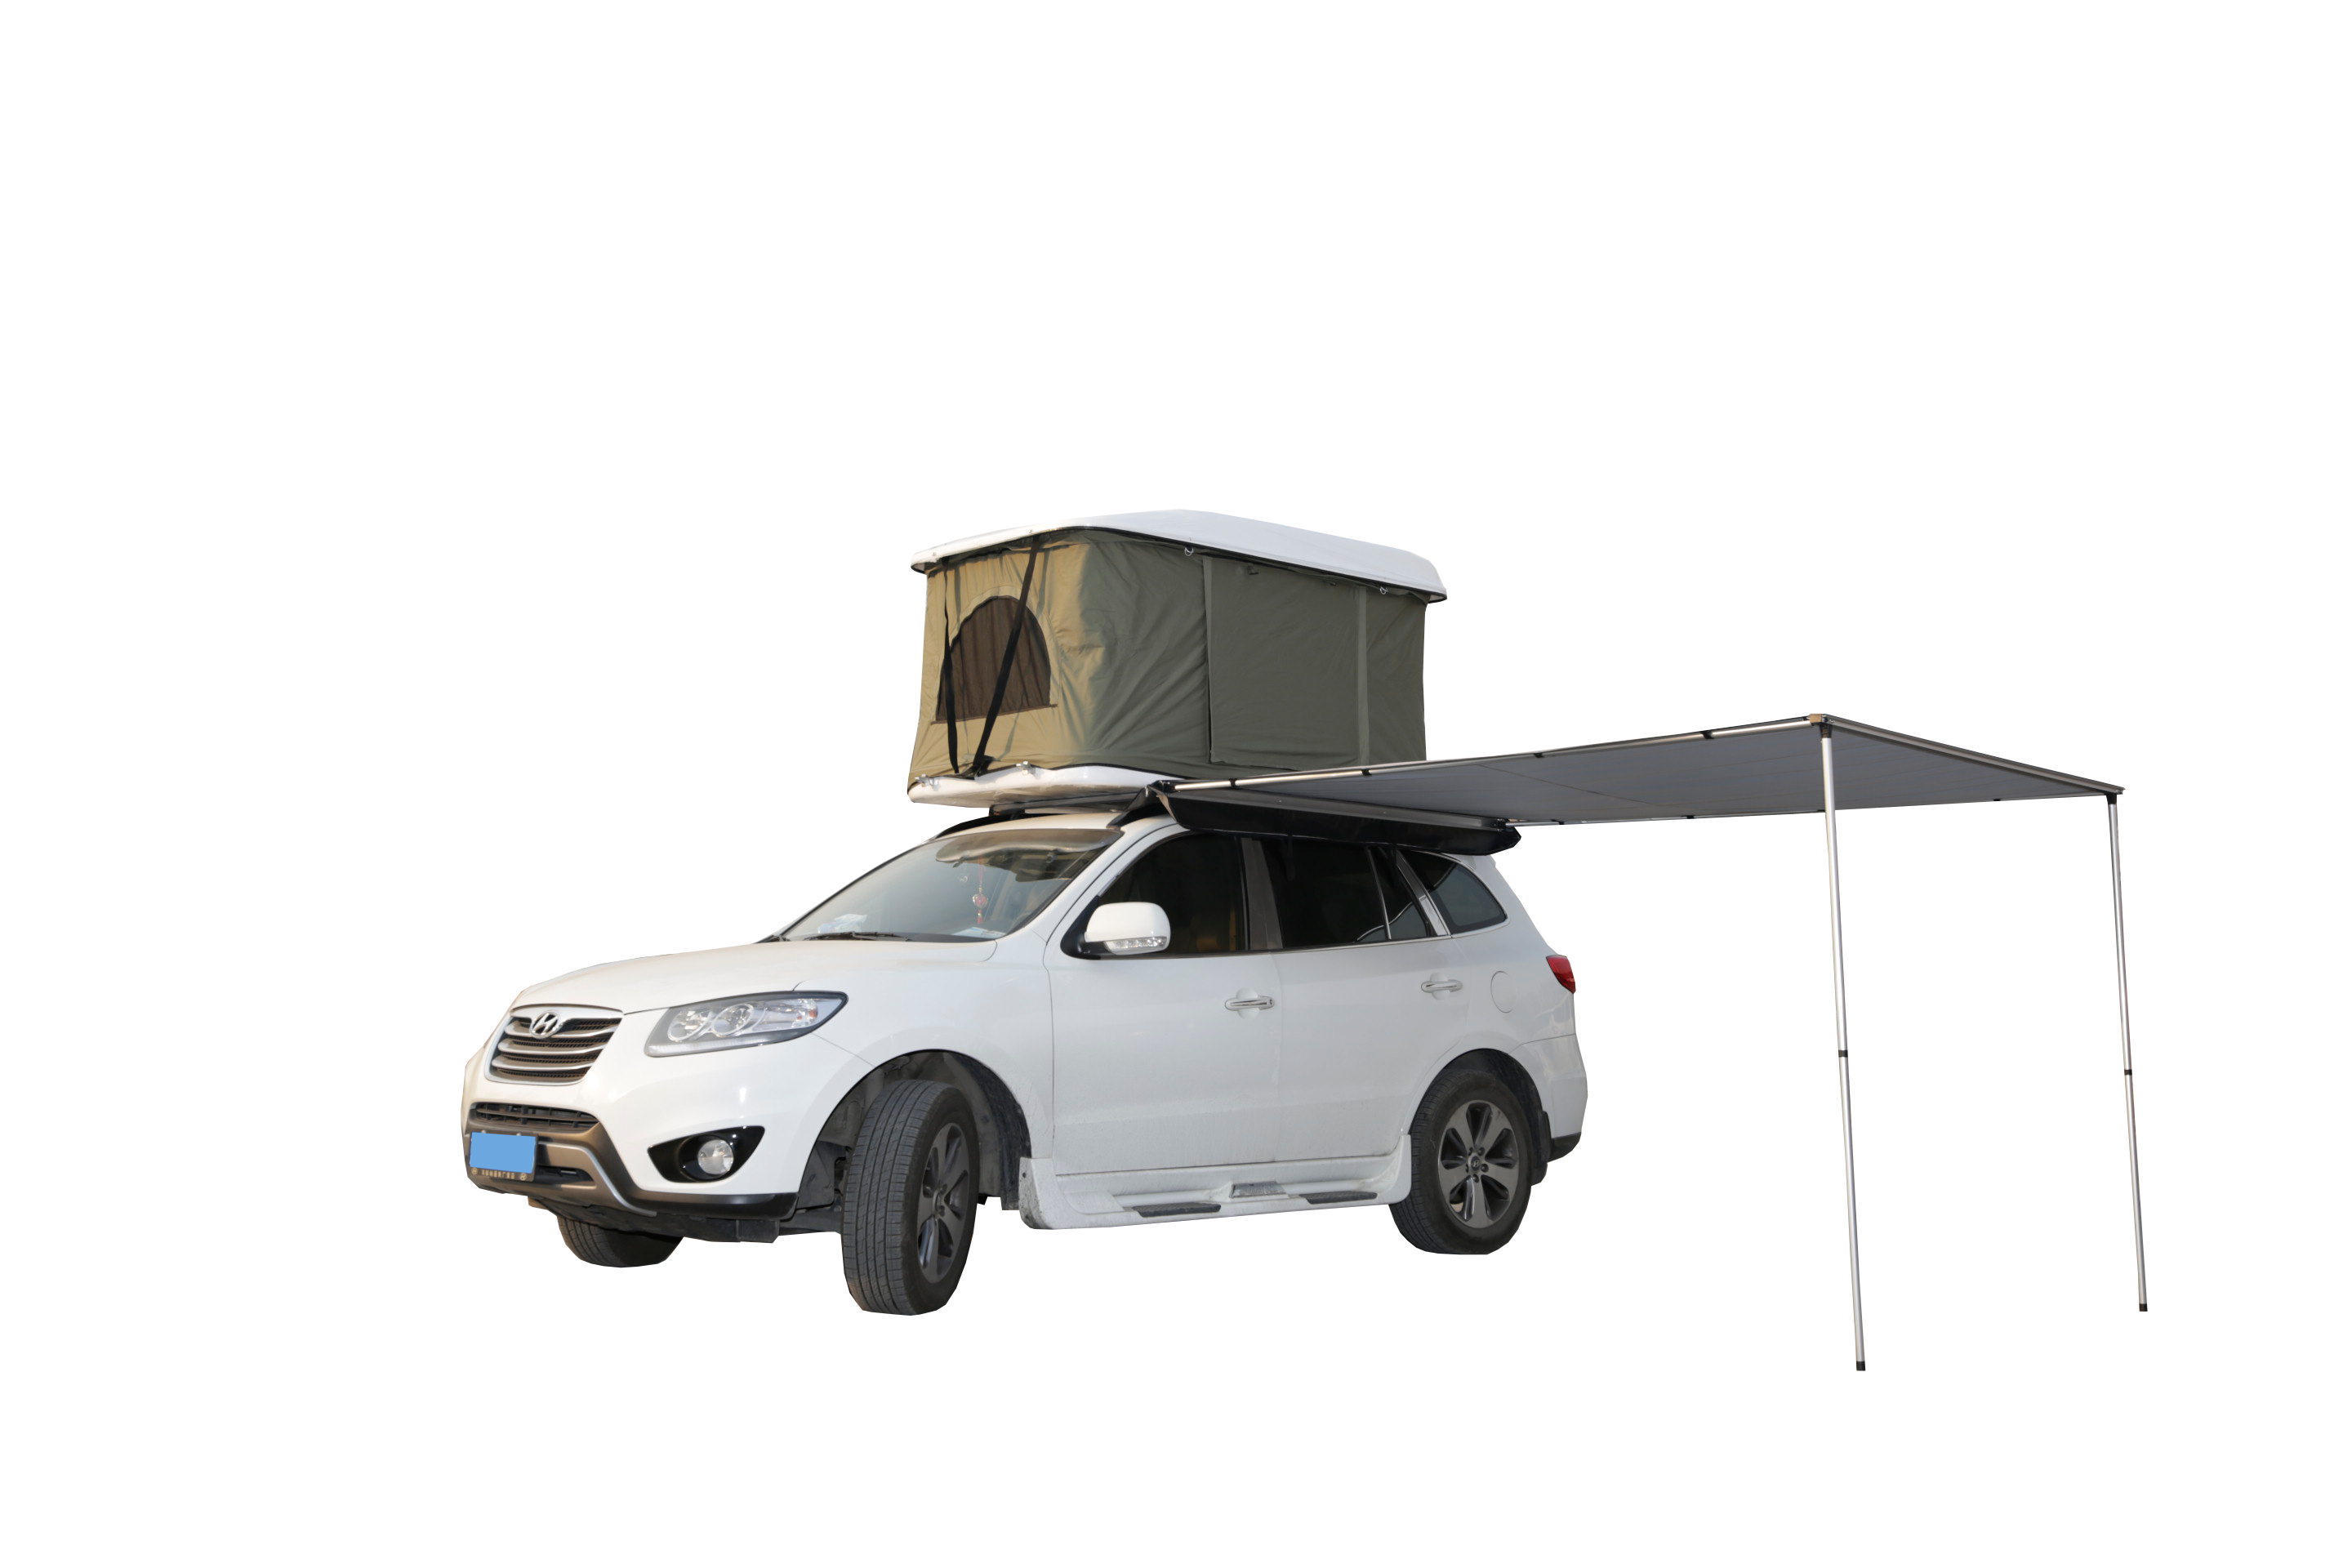 Car Side Awning   Car Side Awning Supplier   Waterproof  Car Side Awning